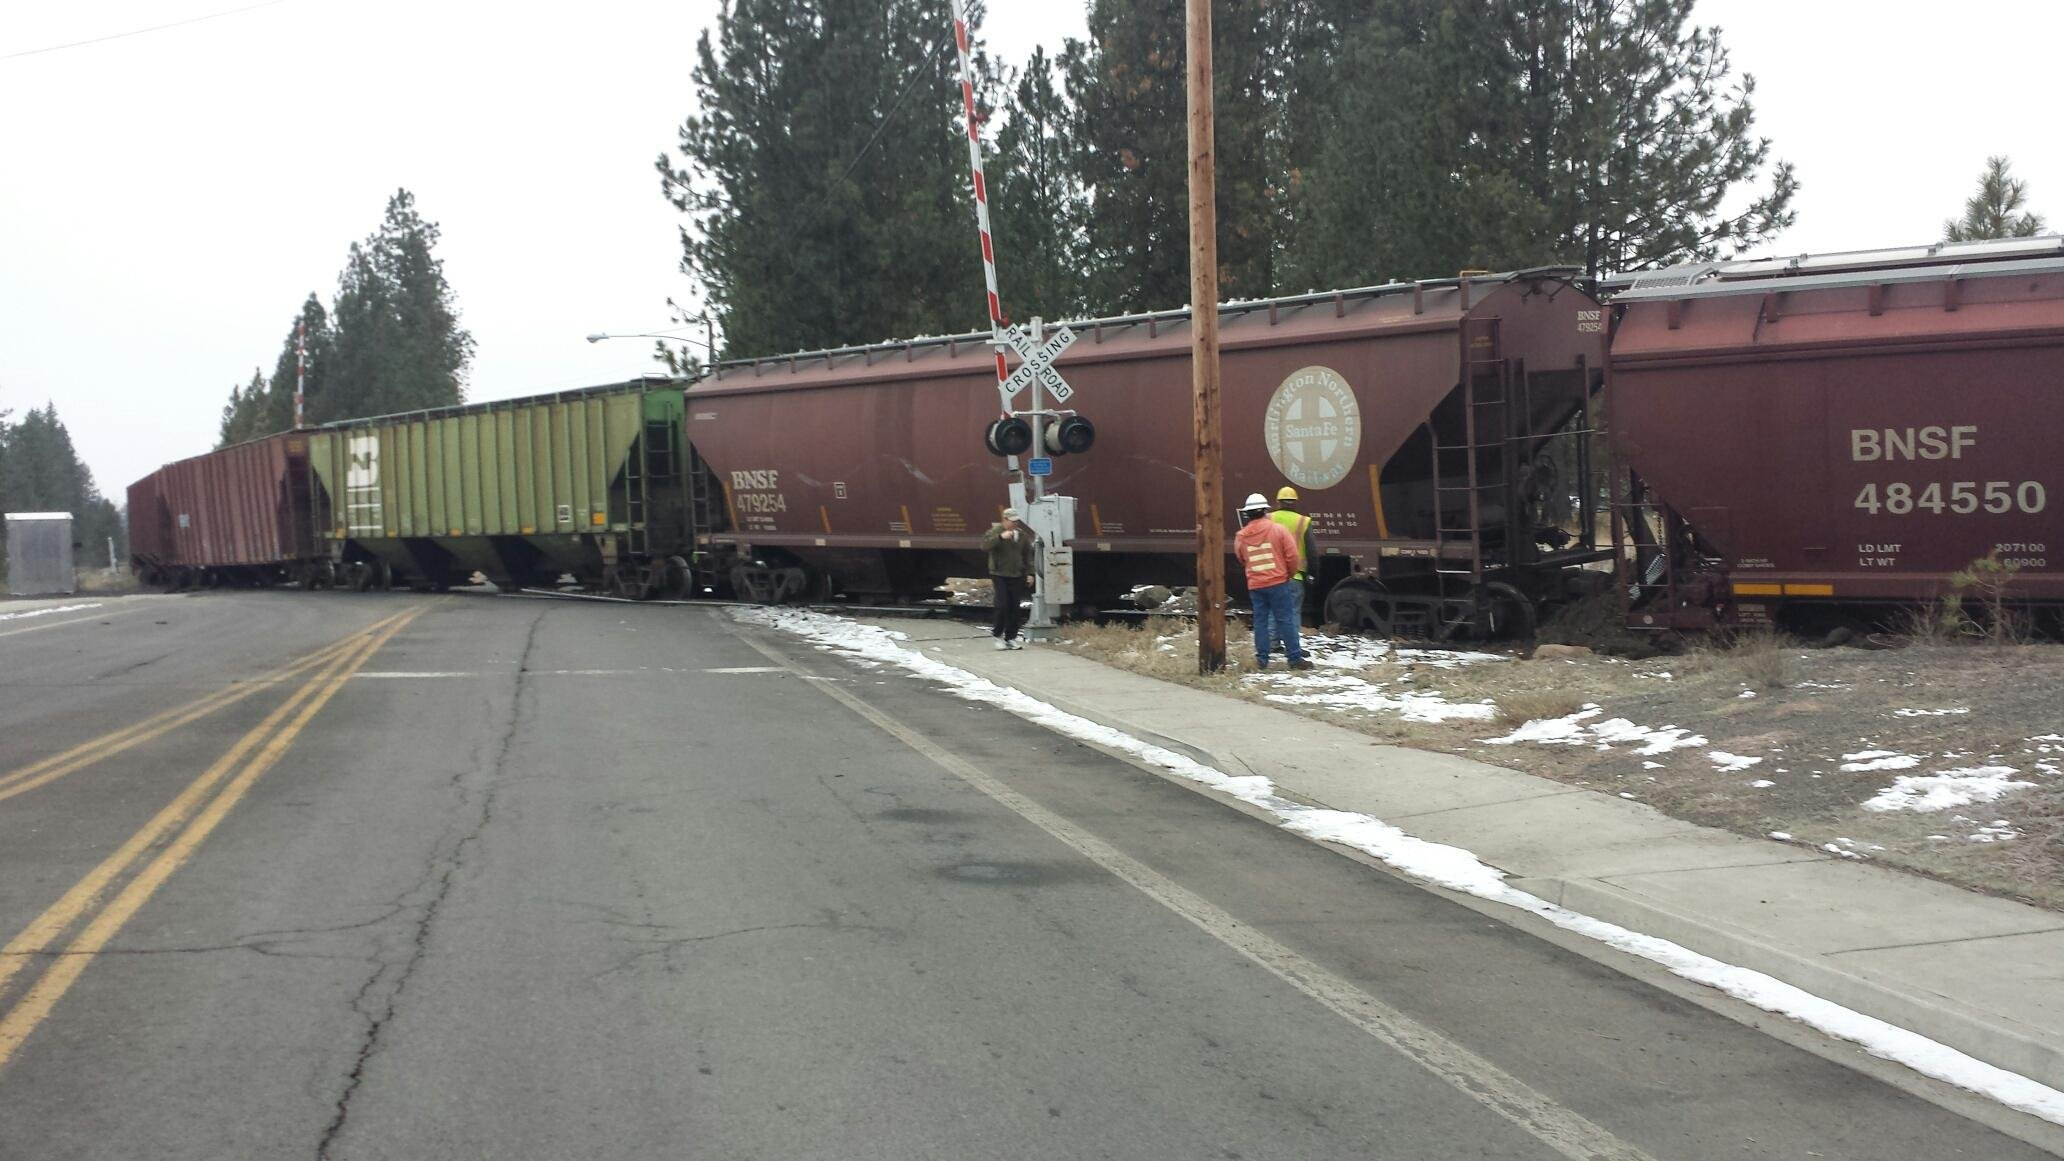 A train derailed in Cheney Thursday morning, blocking Cheney-Spokane Road